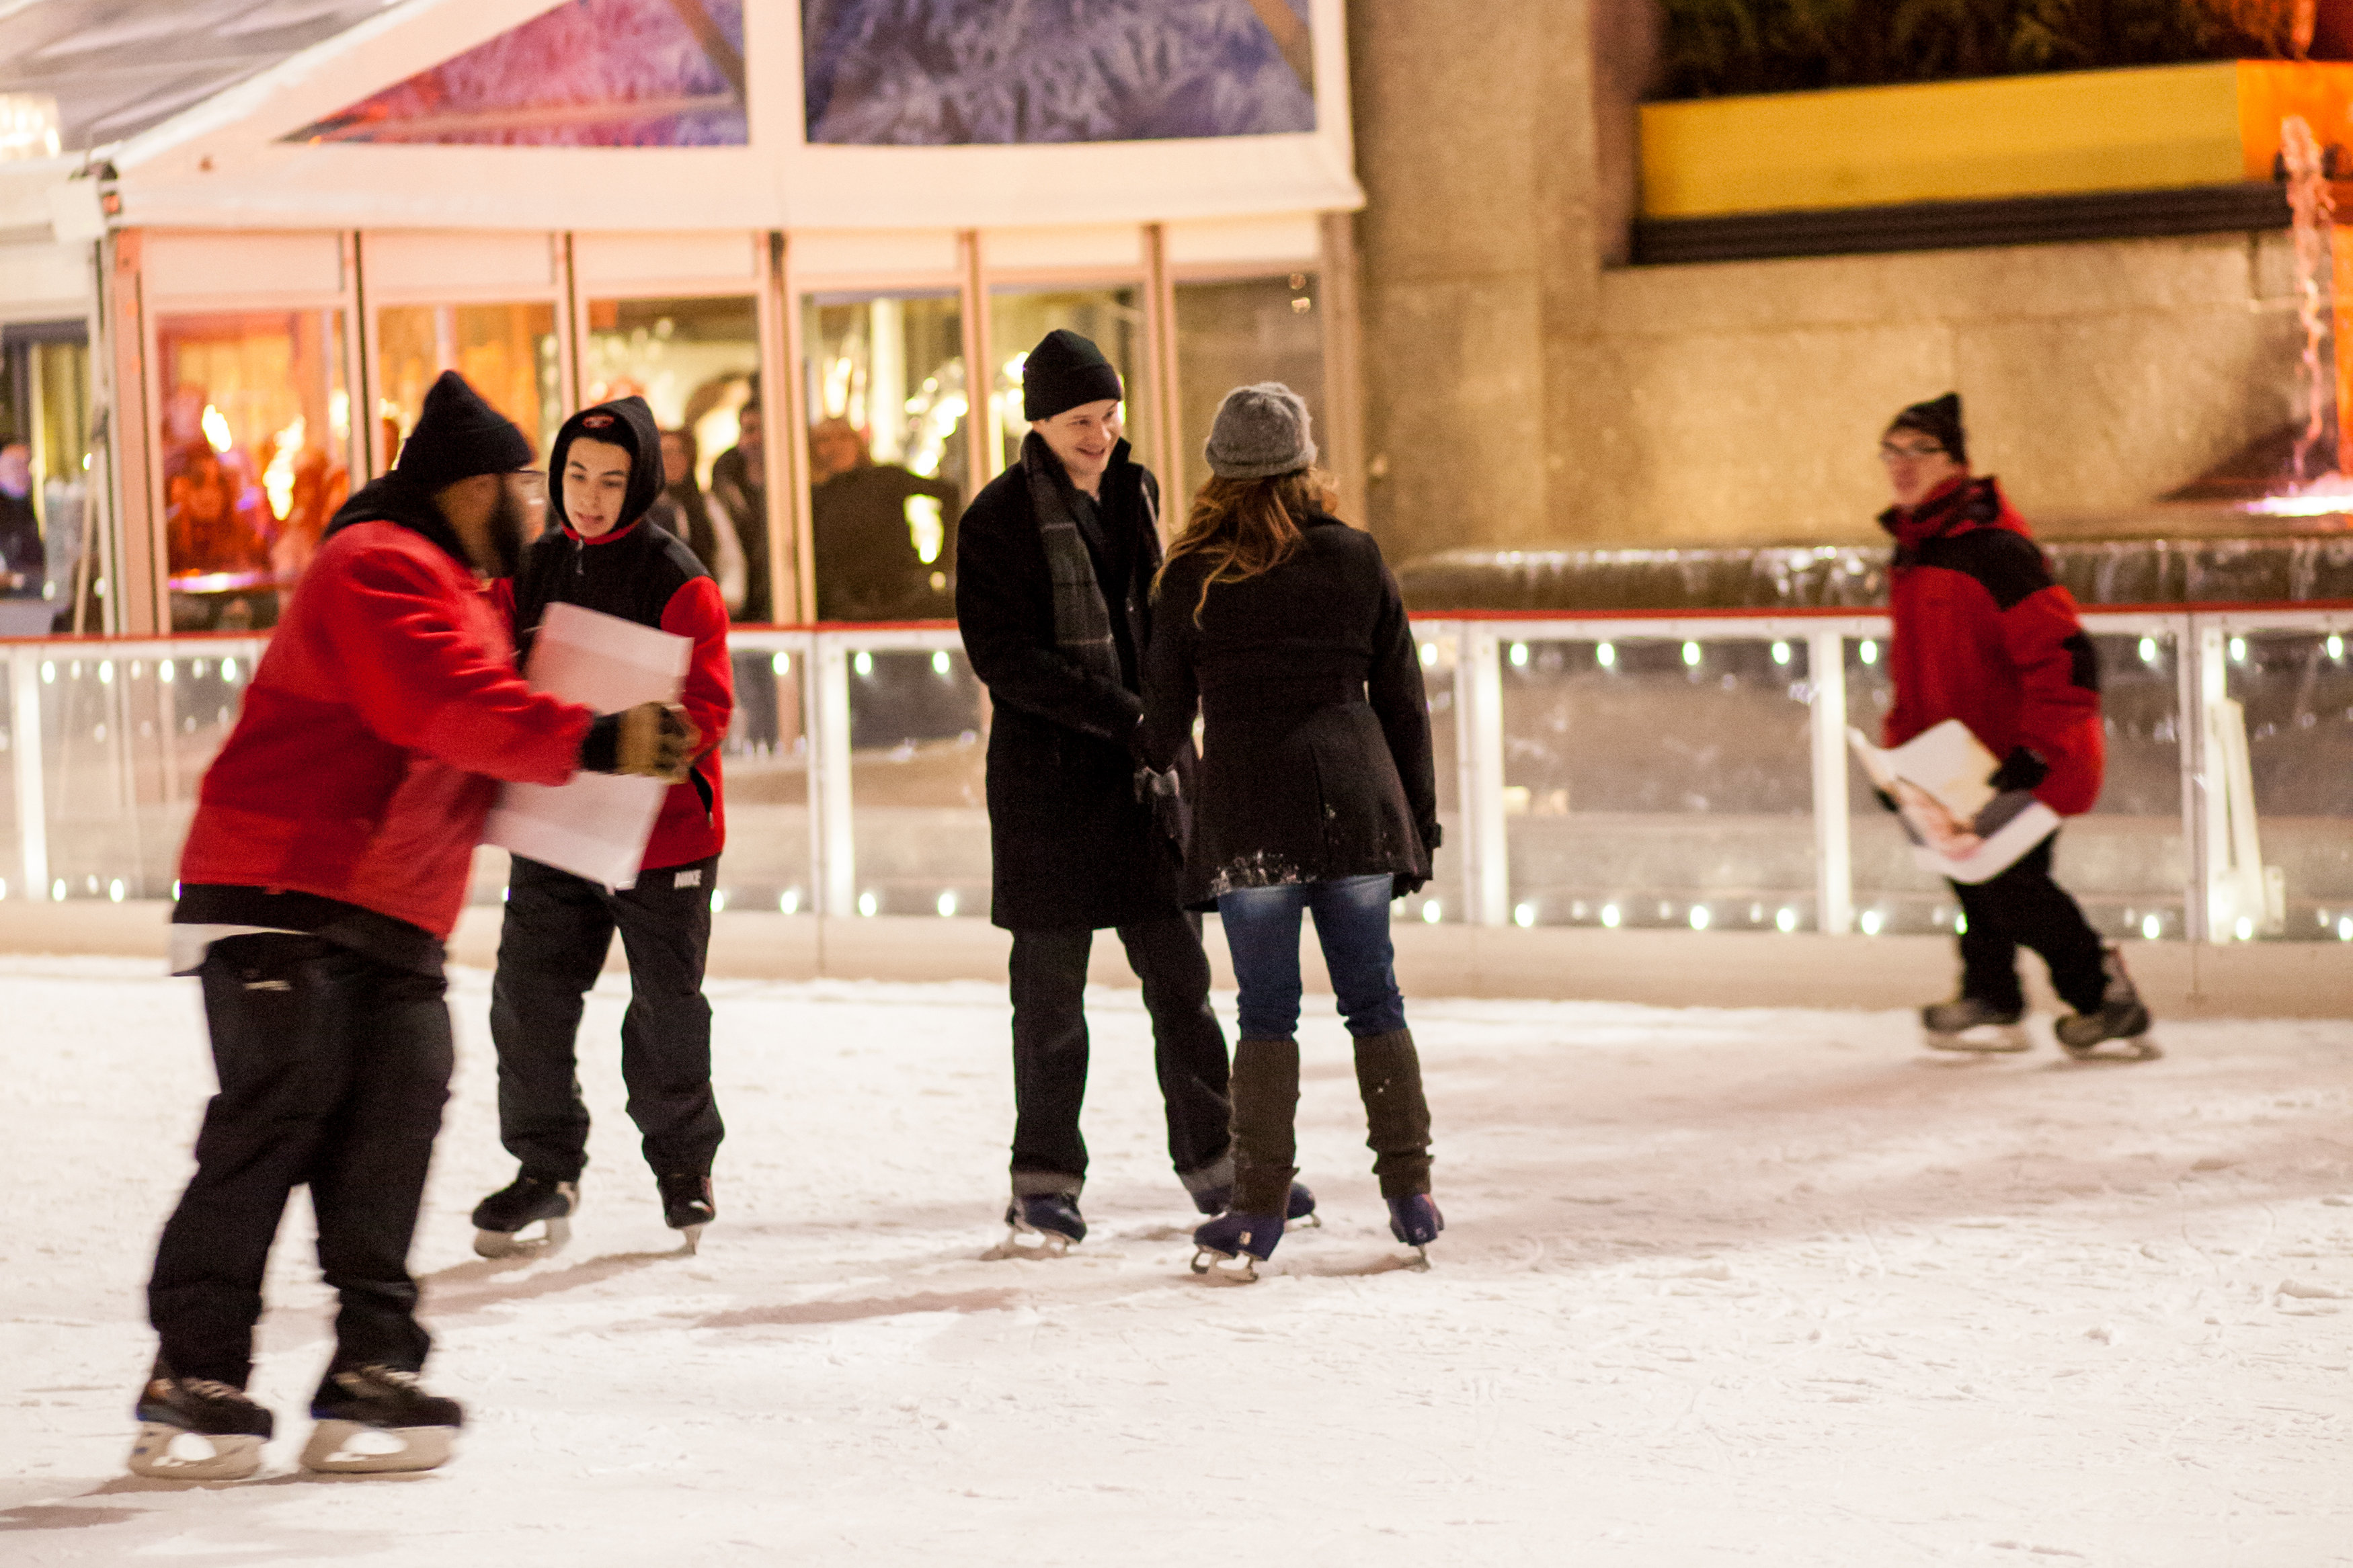 Image 4 of Christmas Day Proposal at Rockefeller Plaza